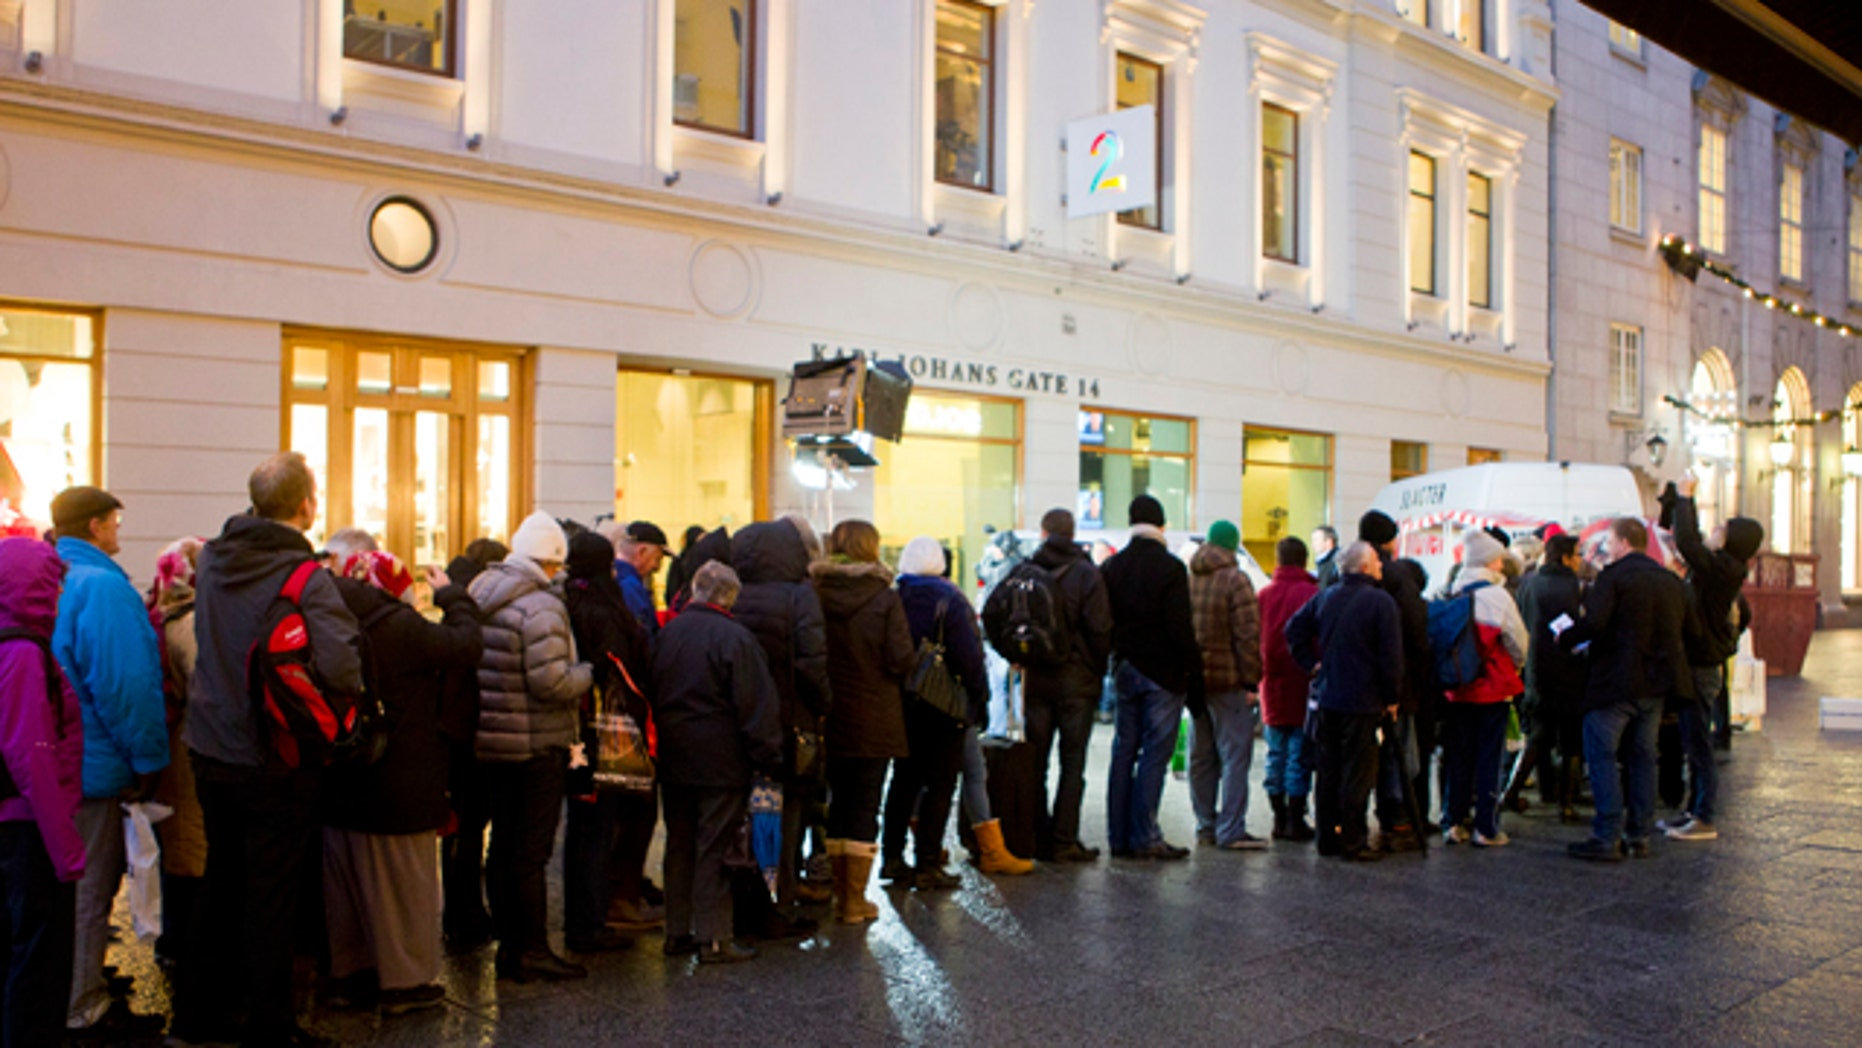 Dec. 9: People line up for Danish butter on the main street of the Norwegian capital Oslo.